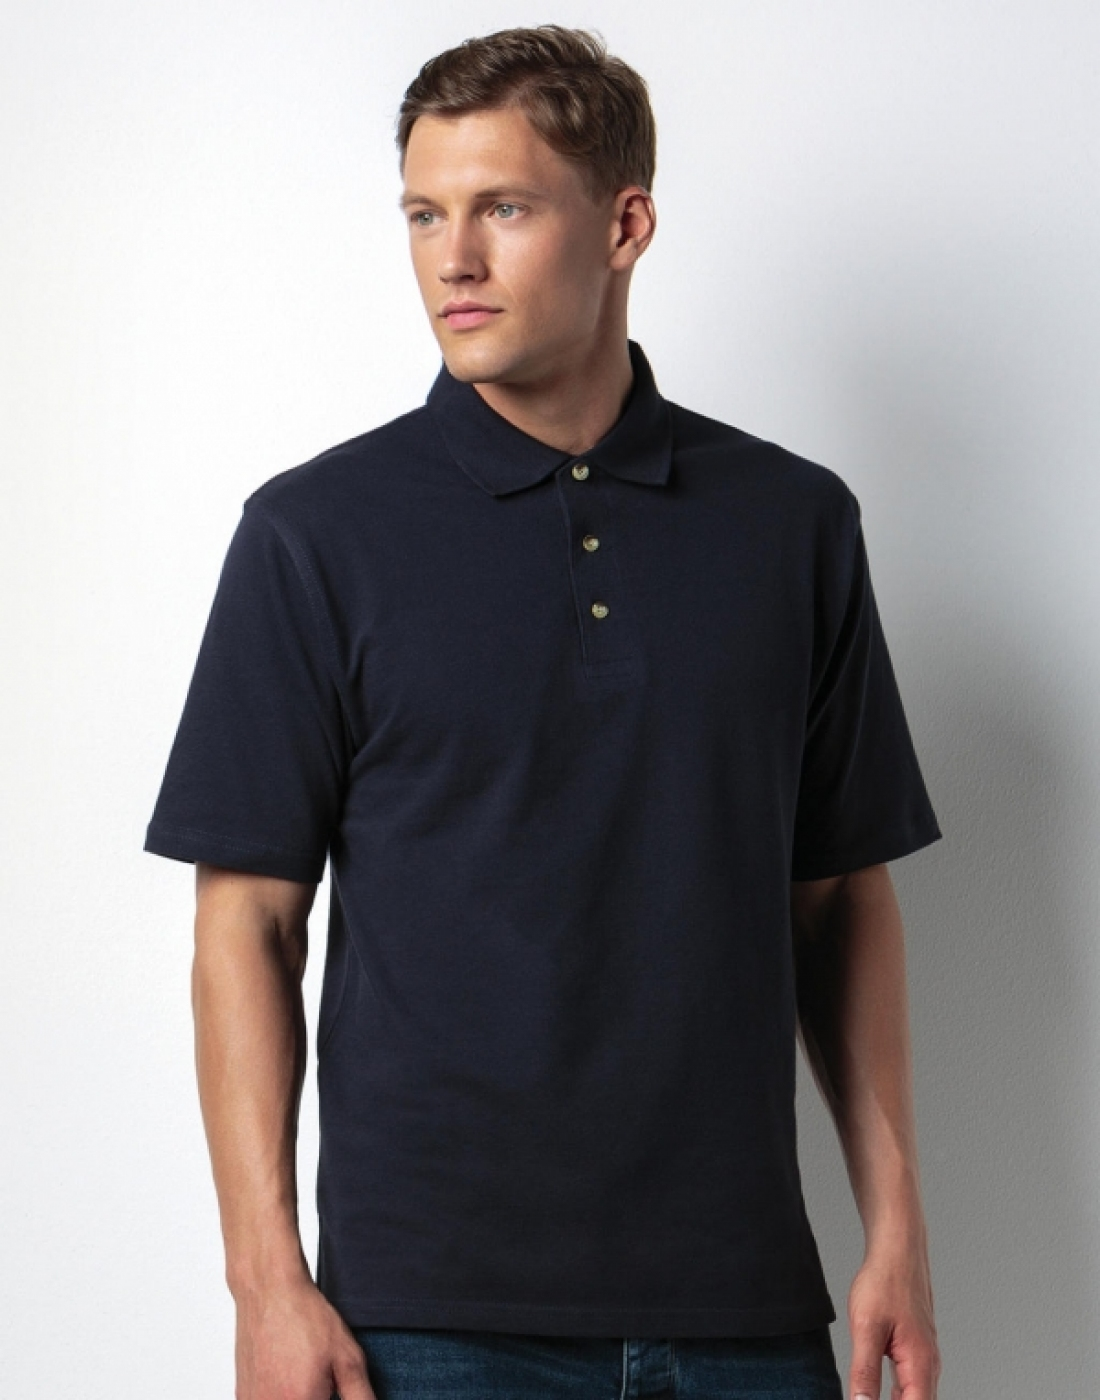 Tricou barman sau ospatar model polo premium pique 210g, de barbat